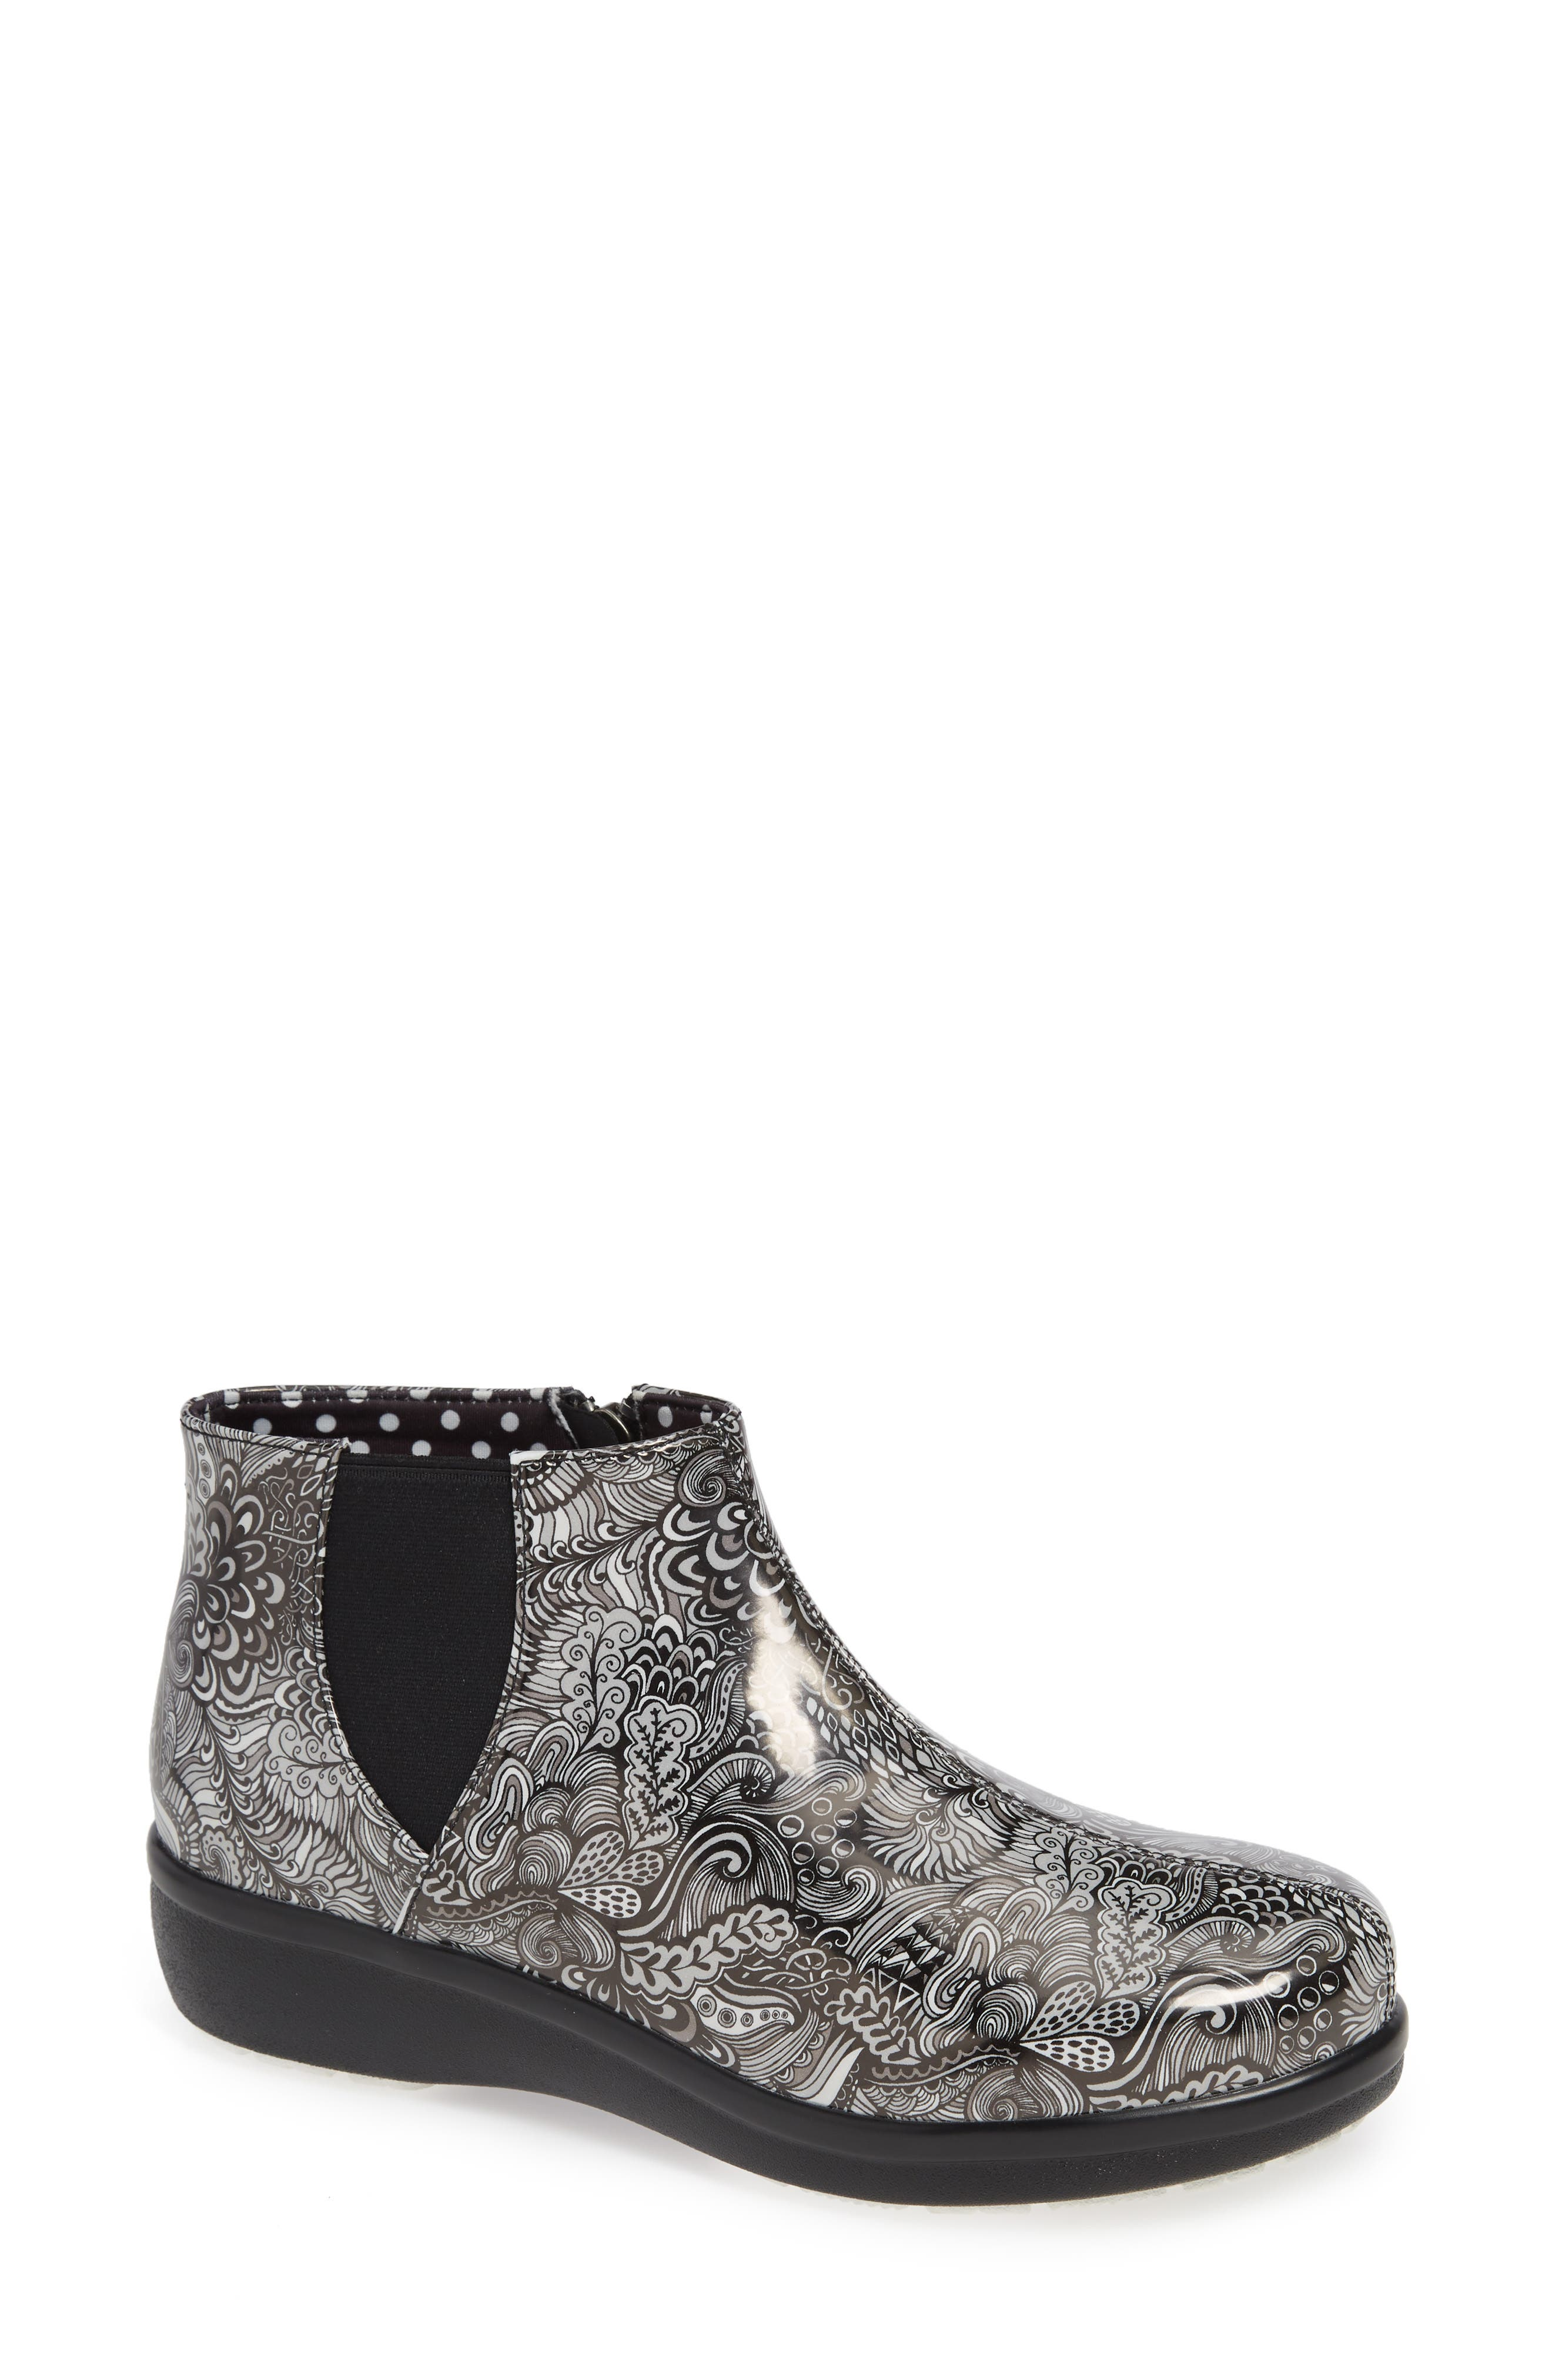 Climatease Chelsea Bootie, Main, color, WHACK A DOODLE GREY LEATHER